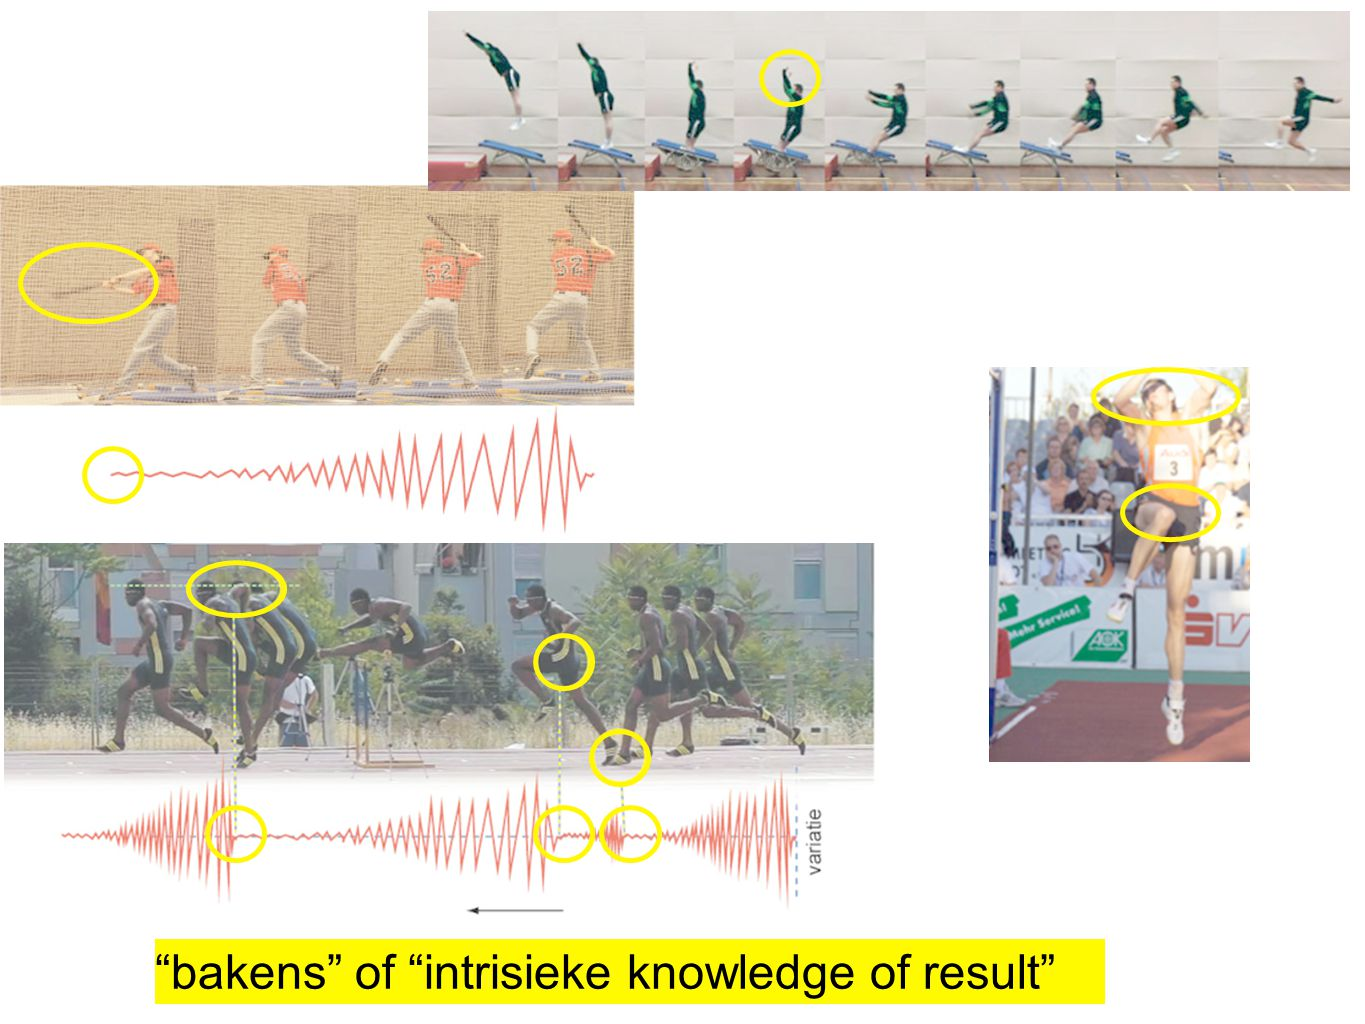 bakens of intrisieke knowledge of result